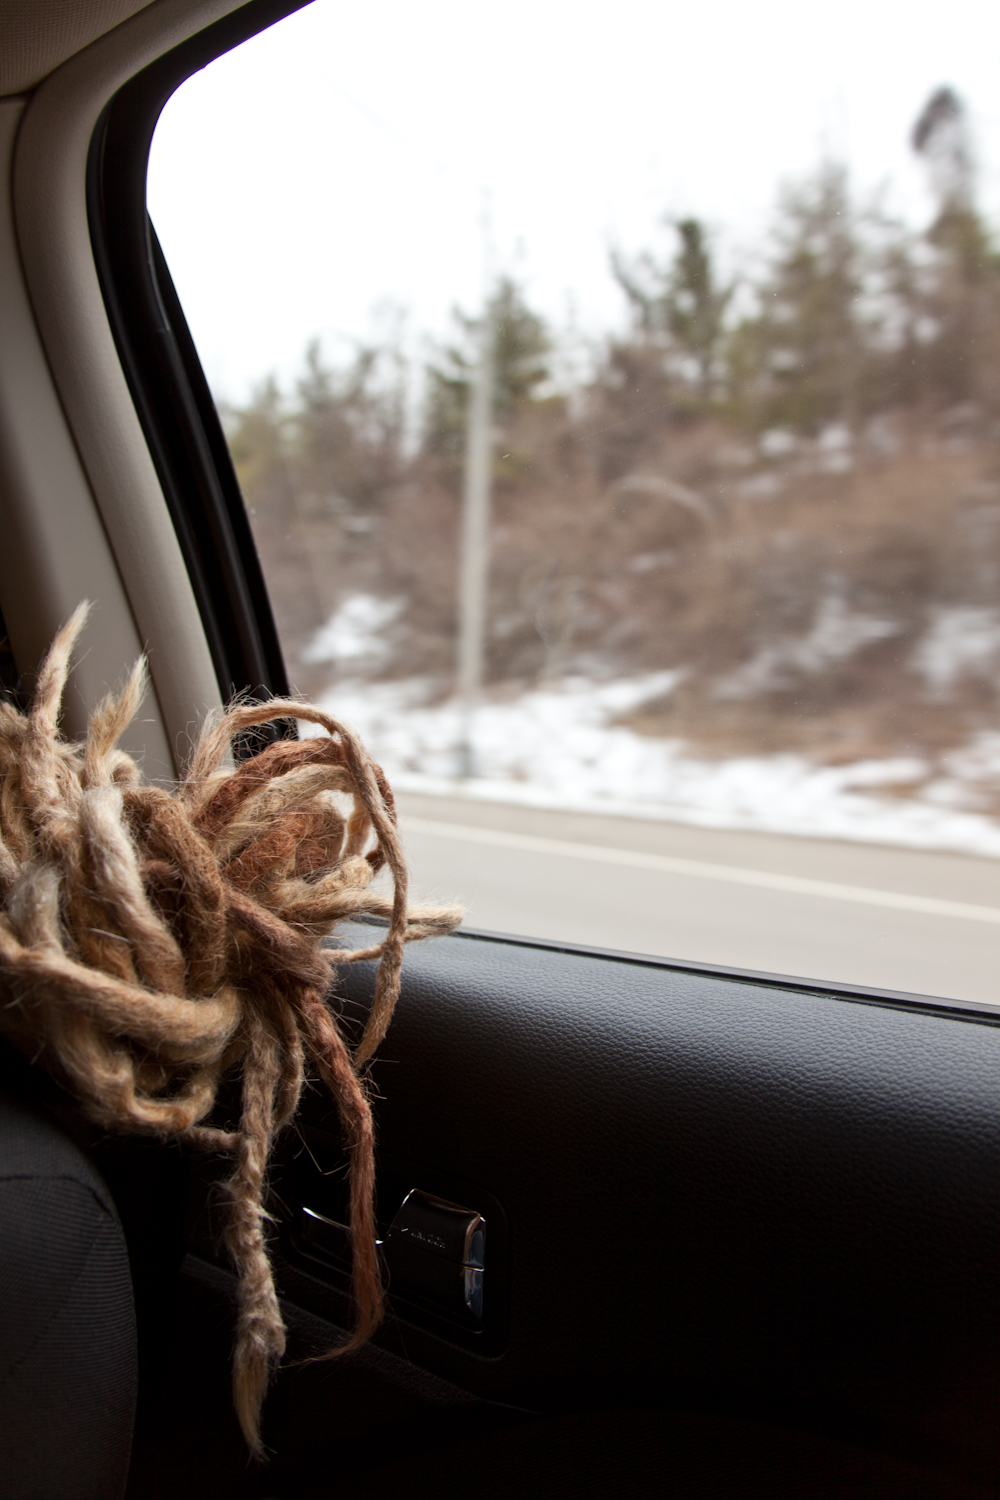 Hair/landscape [February 10, 2012; Somewhere in Ohio]